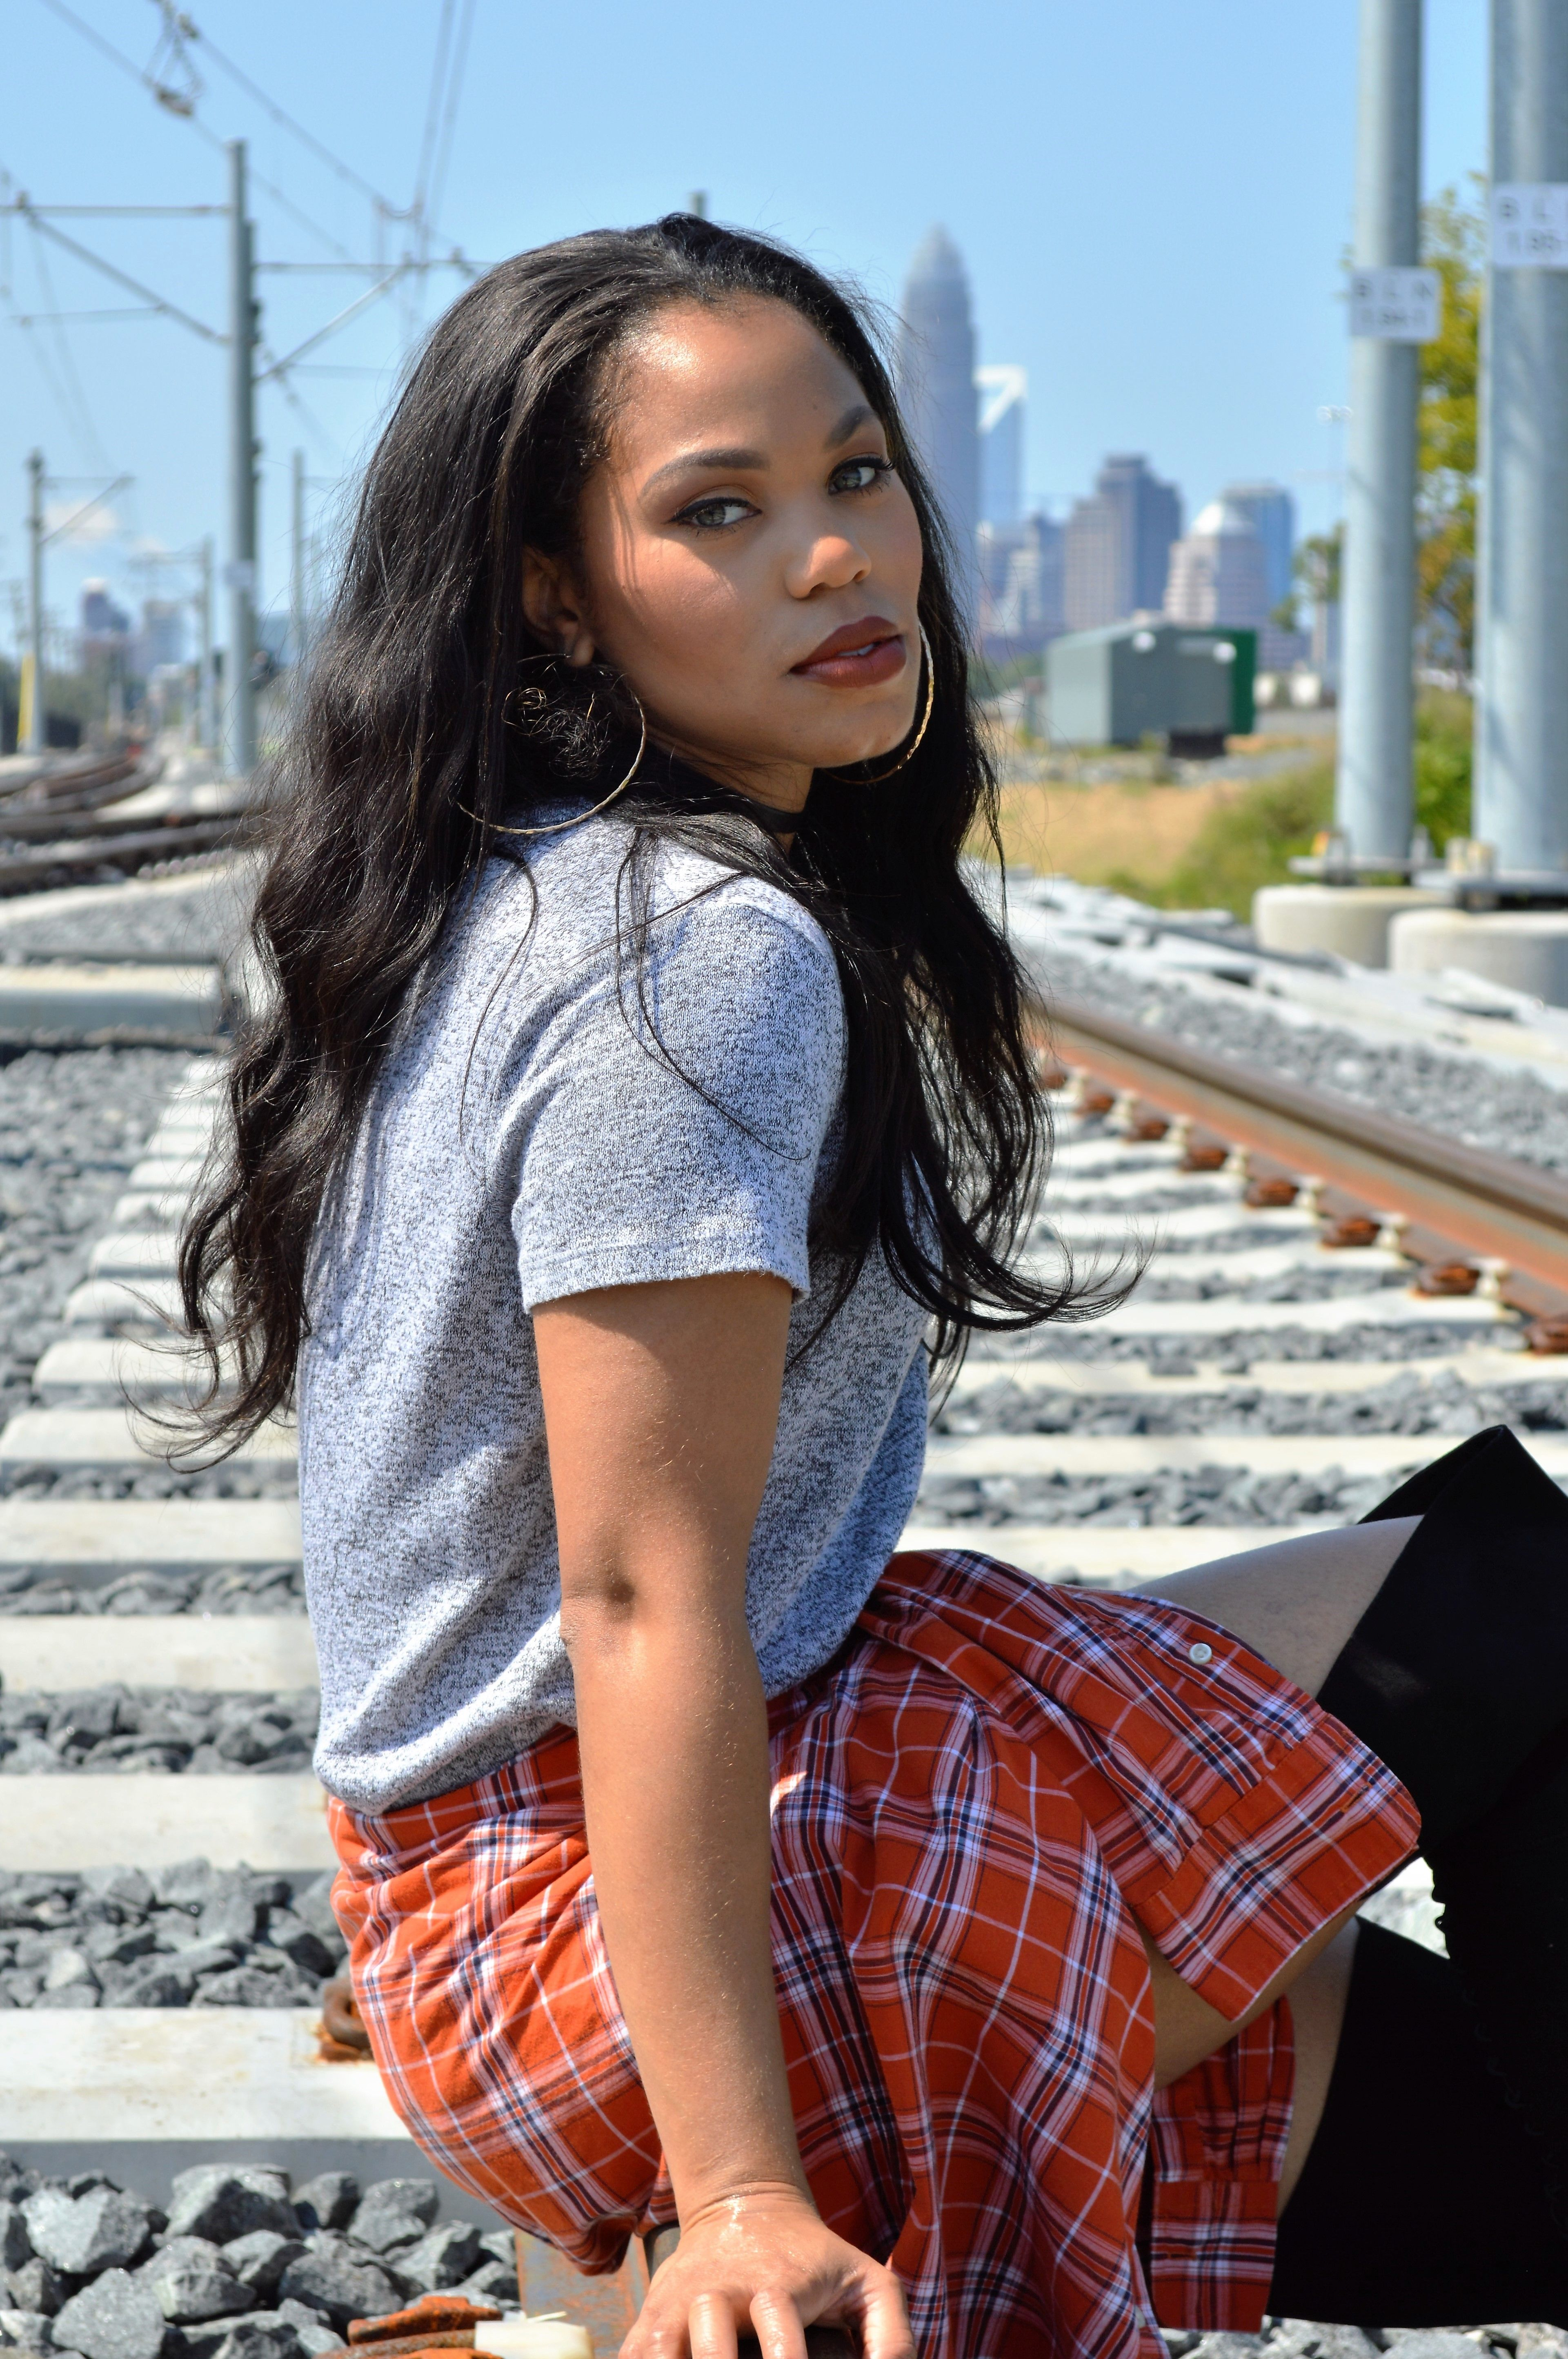 Jackie Paige New Midday Talent Wcdx Fm Ipower Virginia State